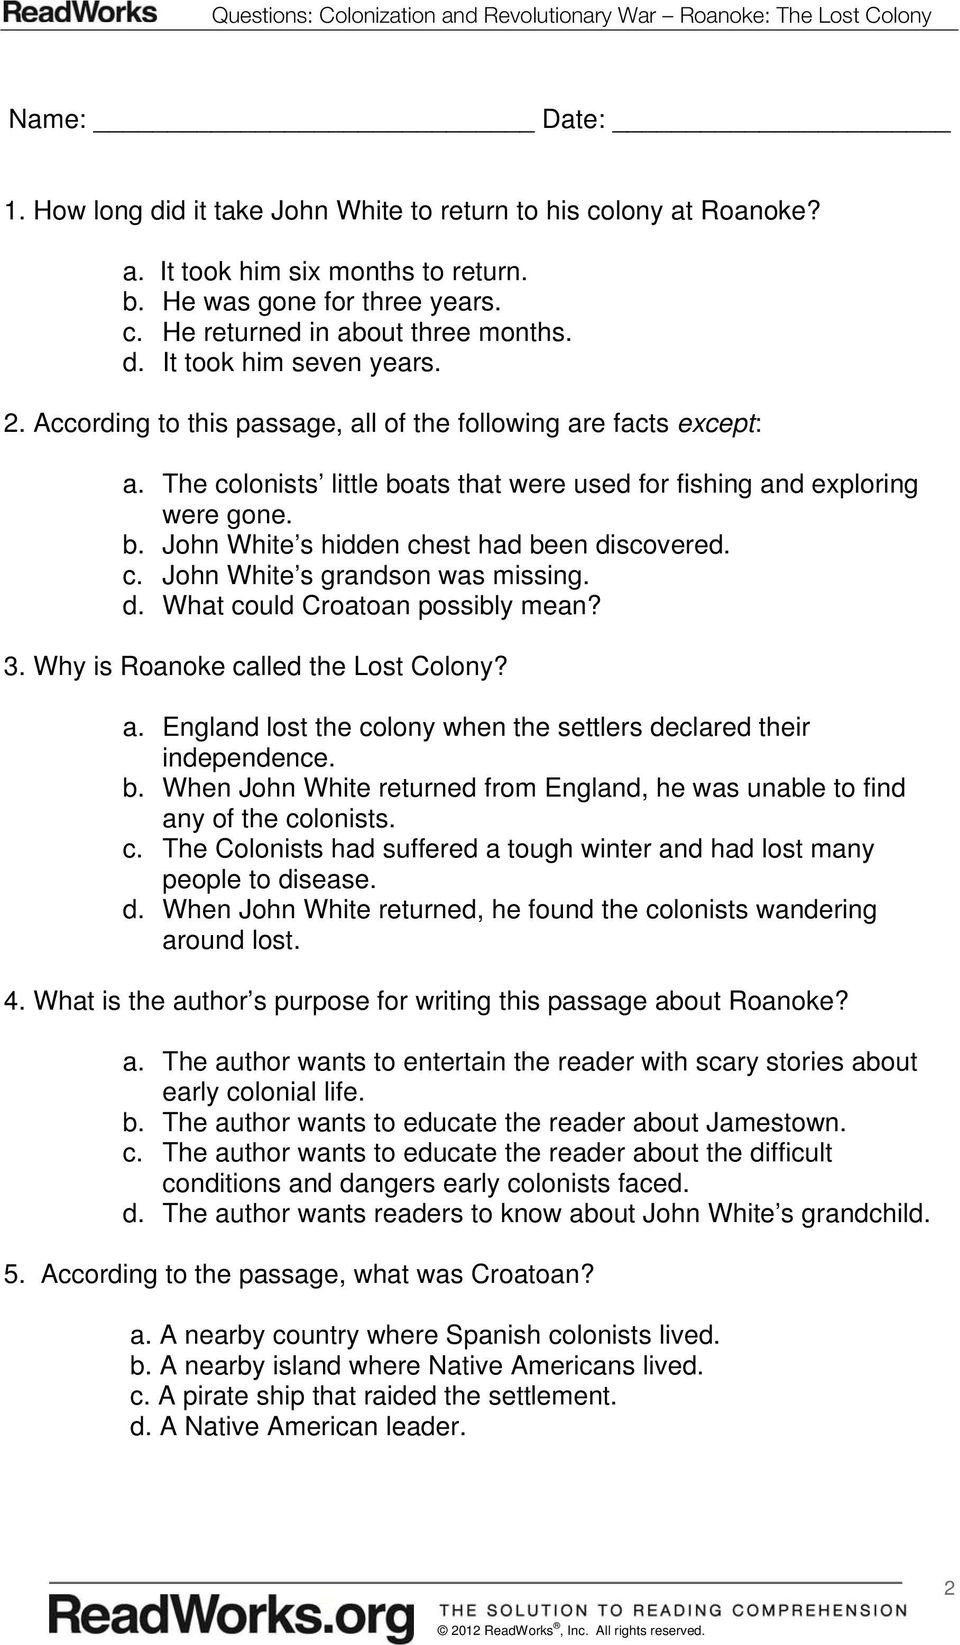 Jamestown Colony Worksheet 5th Grade Colonization and Revolutionary War Roanoke the Lost Colony